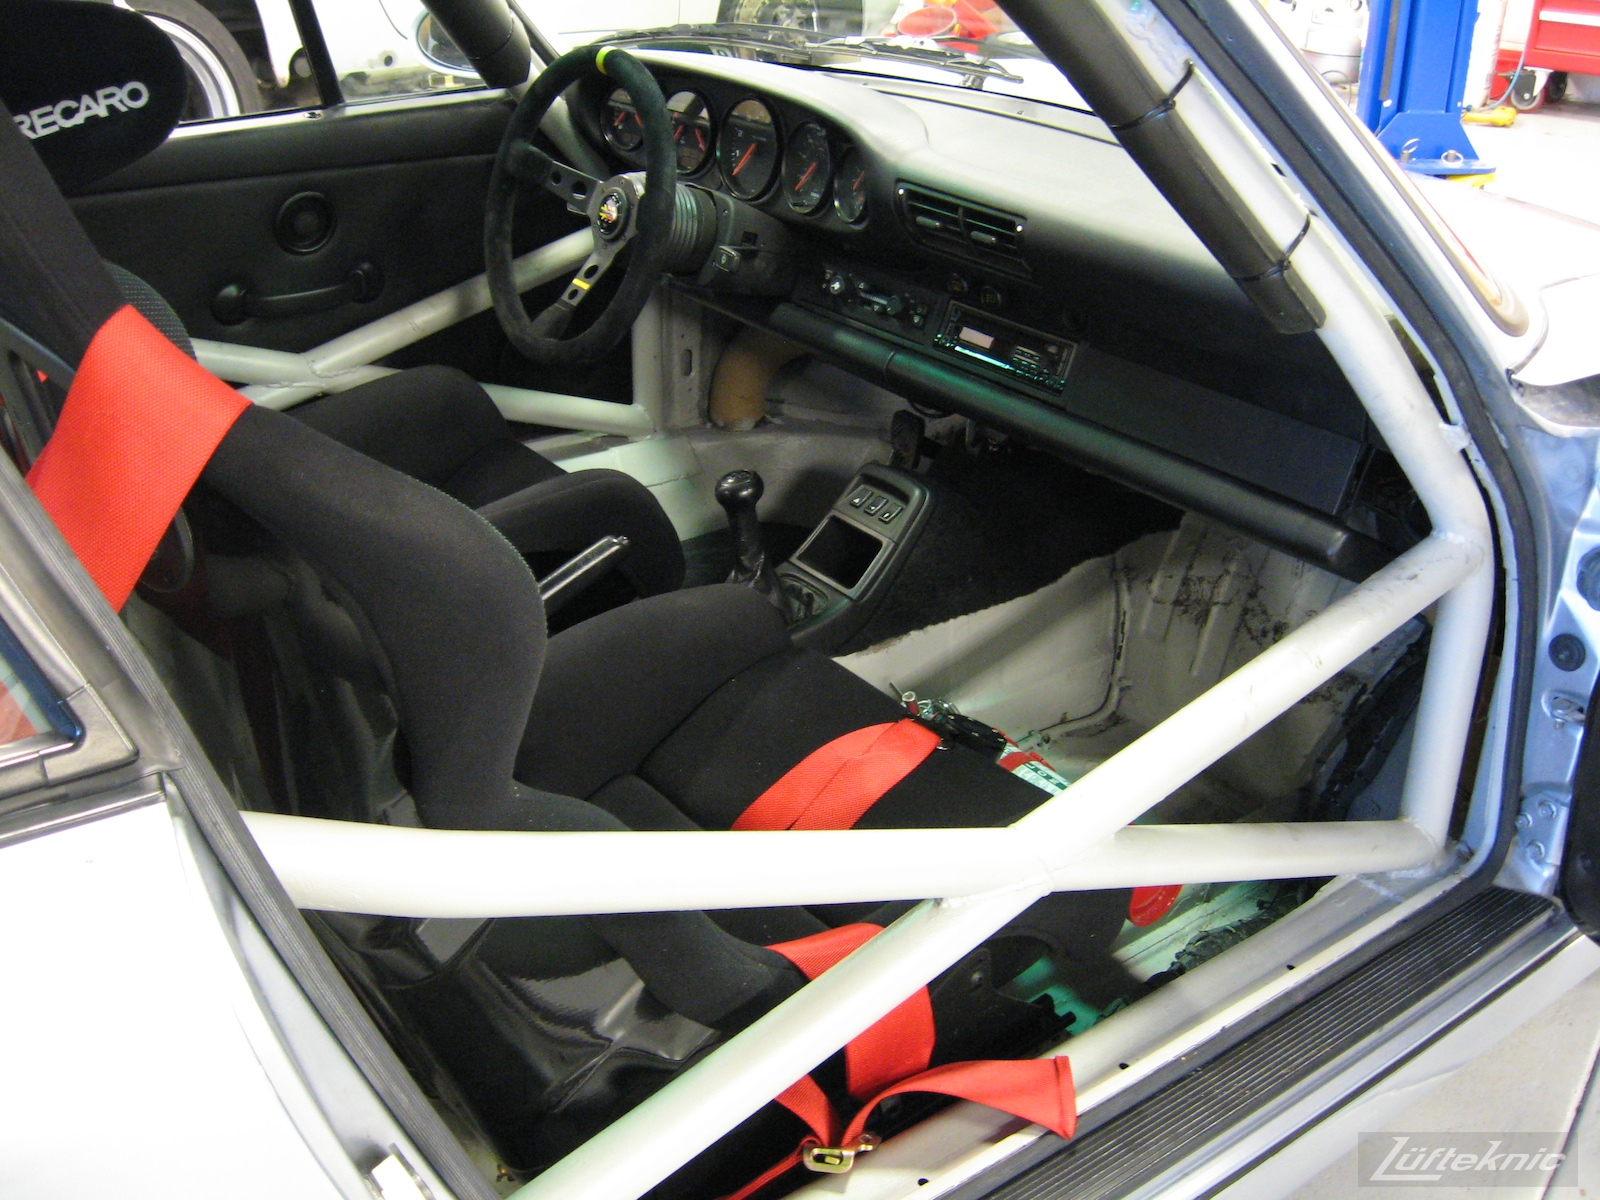 The completed 964 RS America project showing the safety cage, seats and fire extinguisher.